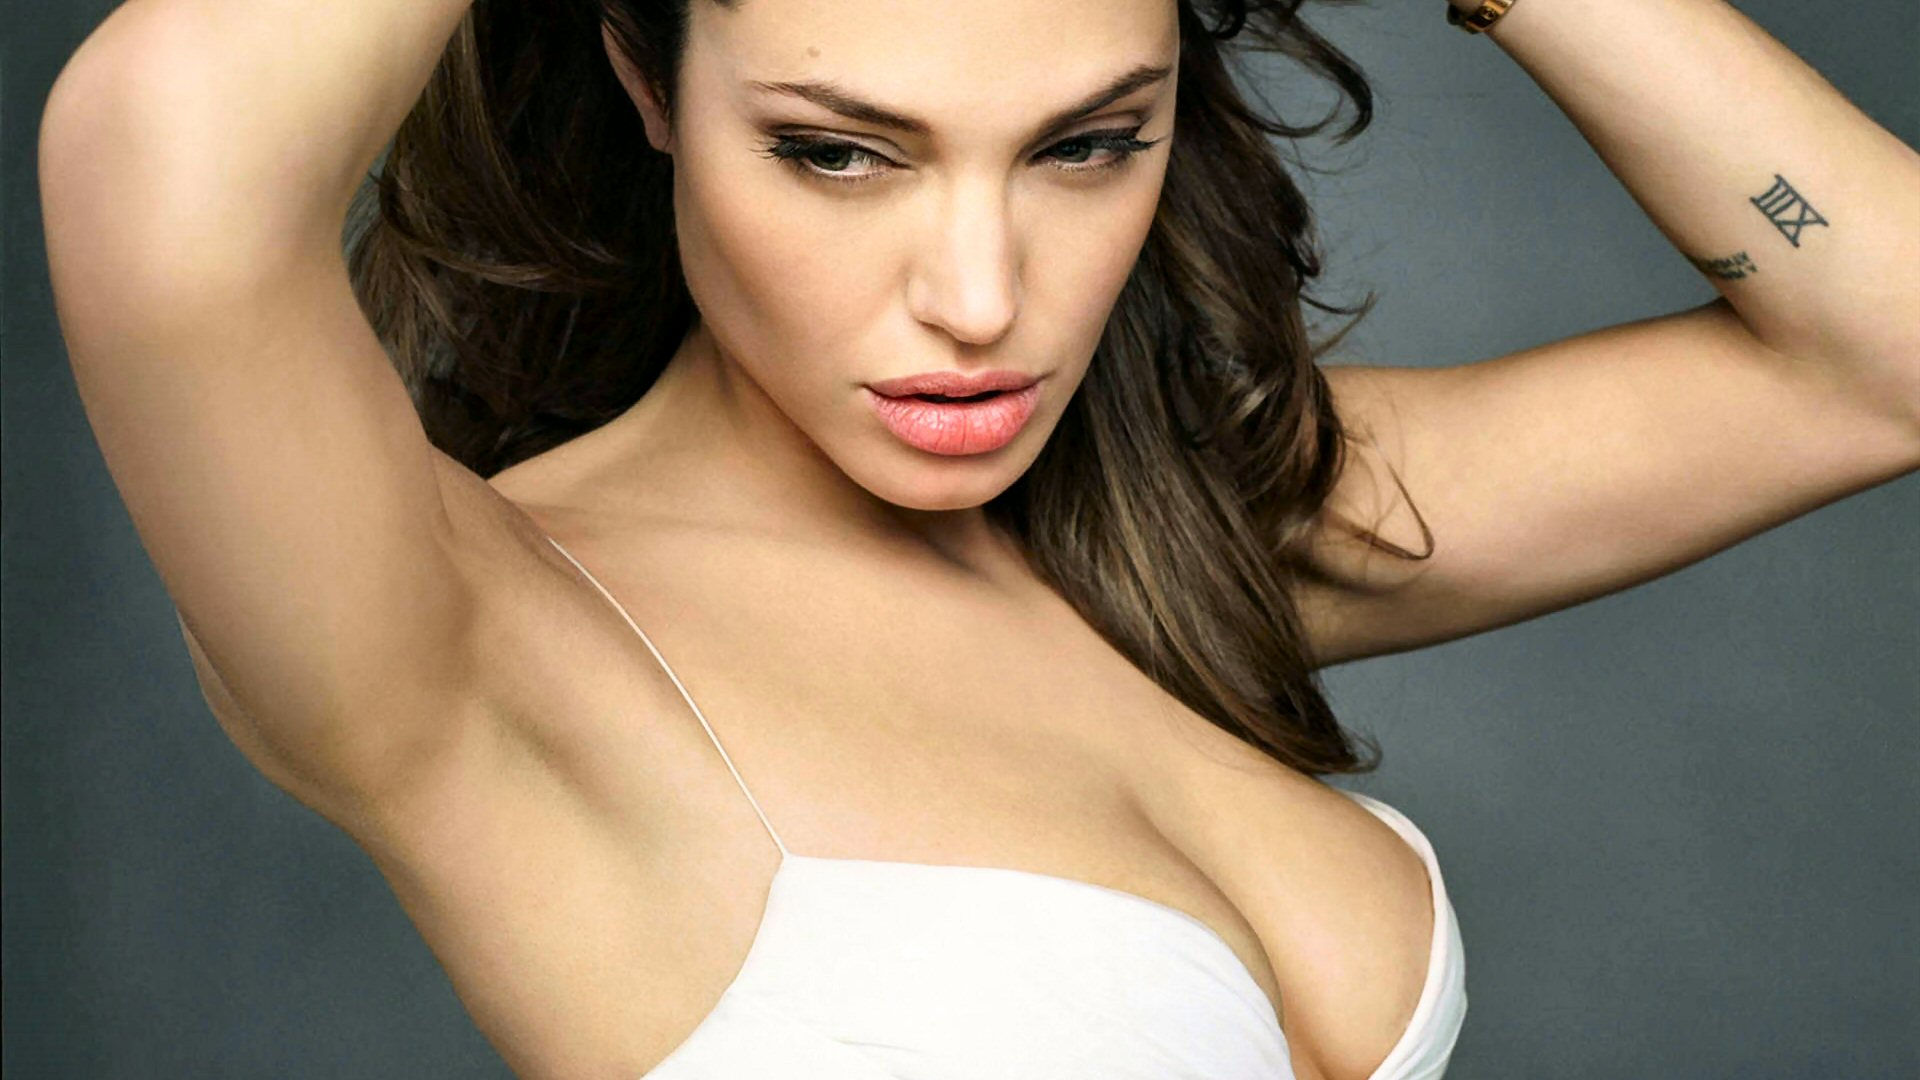 nxeangelinajolie1 How to get pregnant fast: